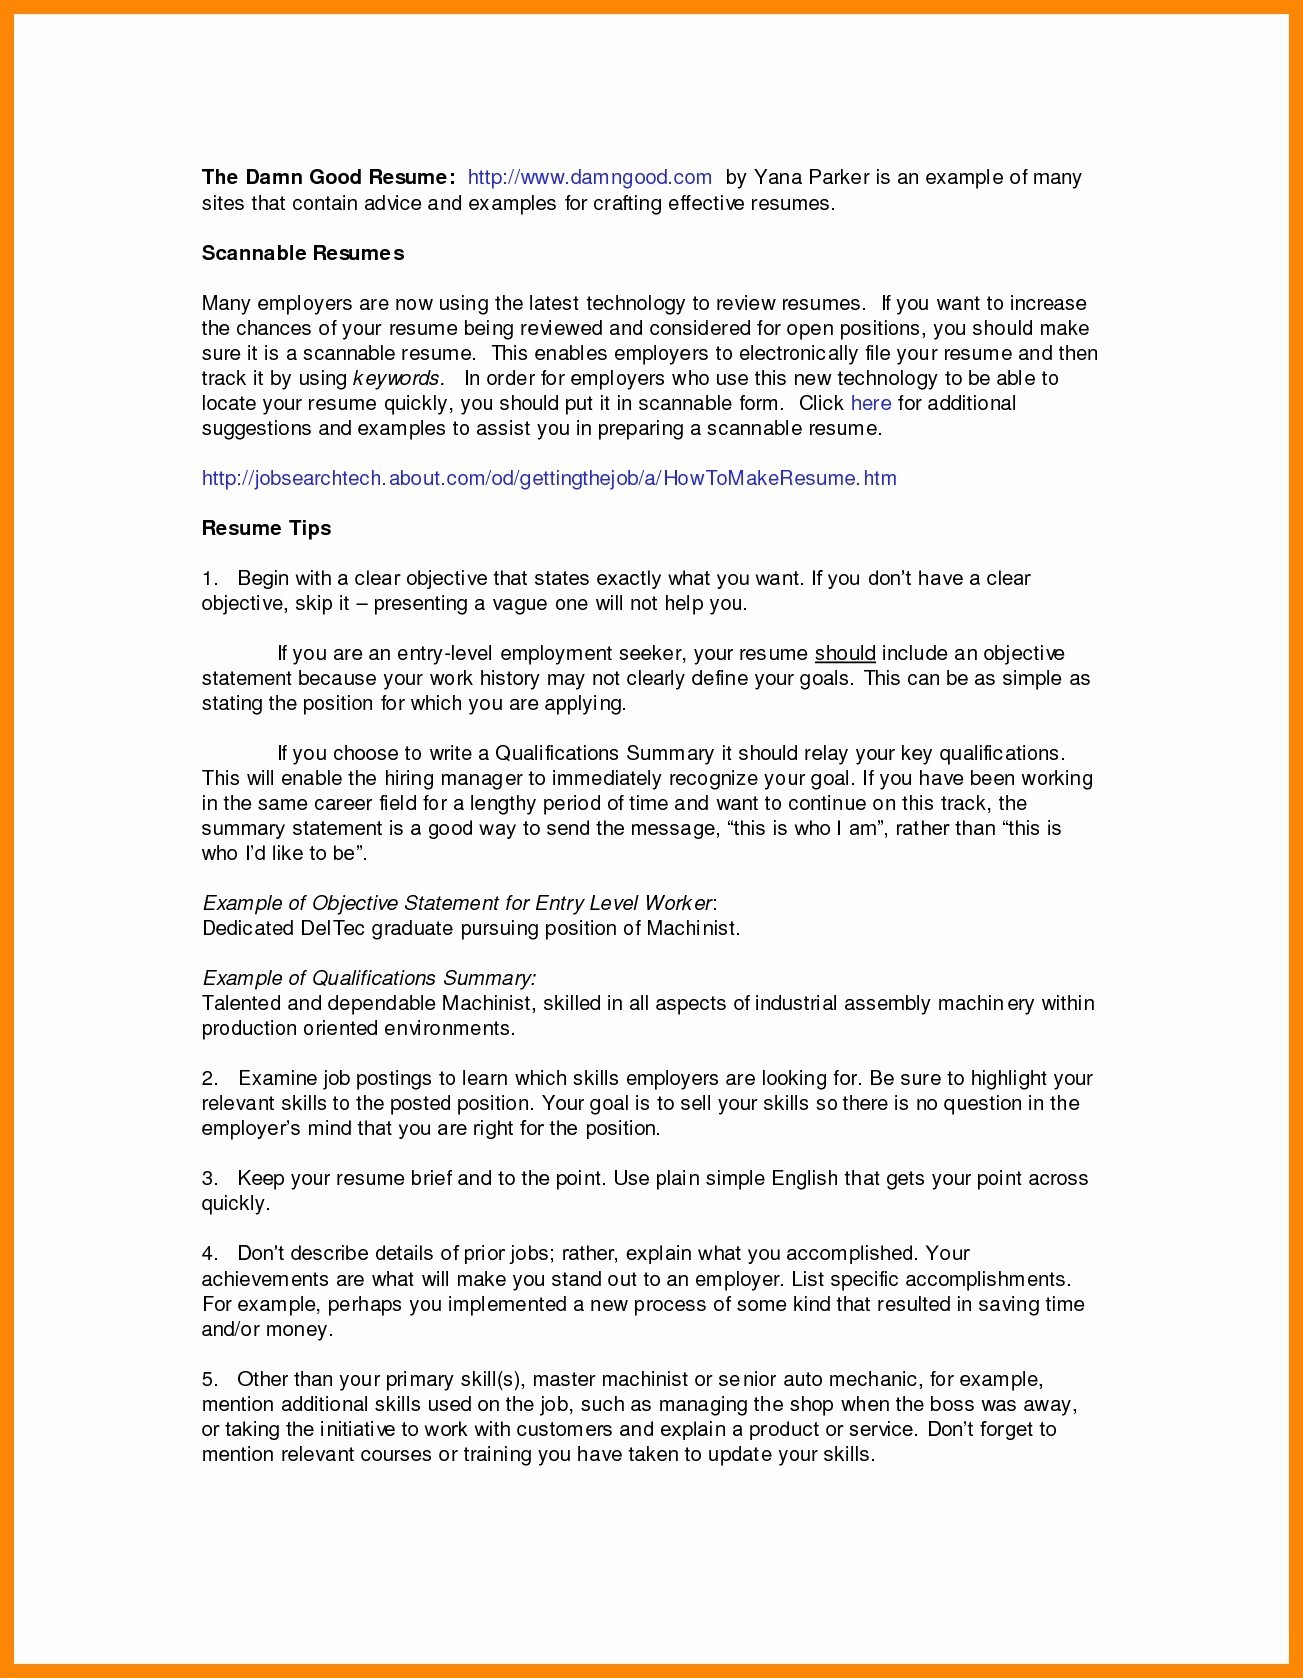 Home Health Aide Resume Template - Scrum Master Resume or How to Make A Resume for Job Application and